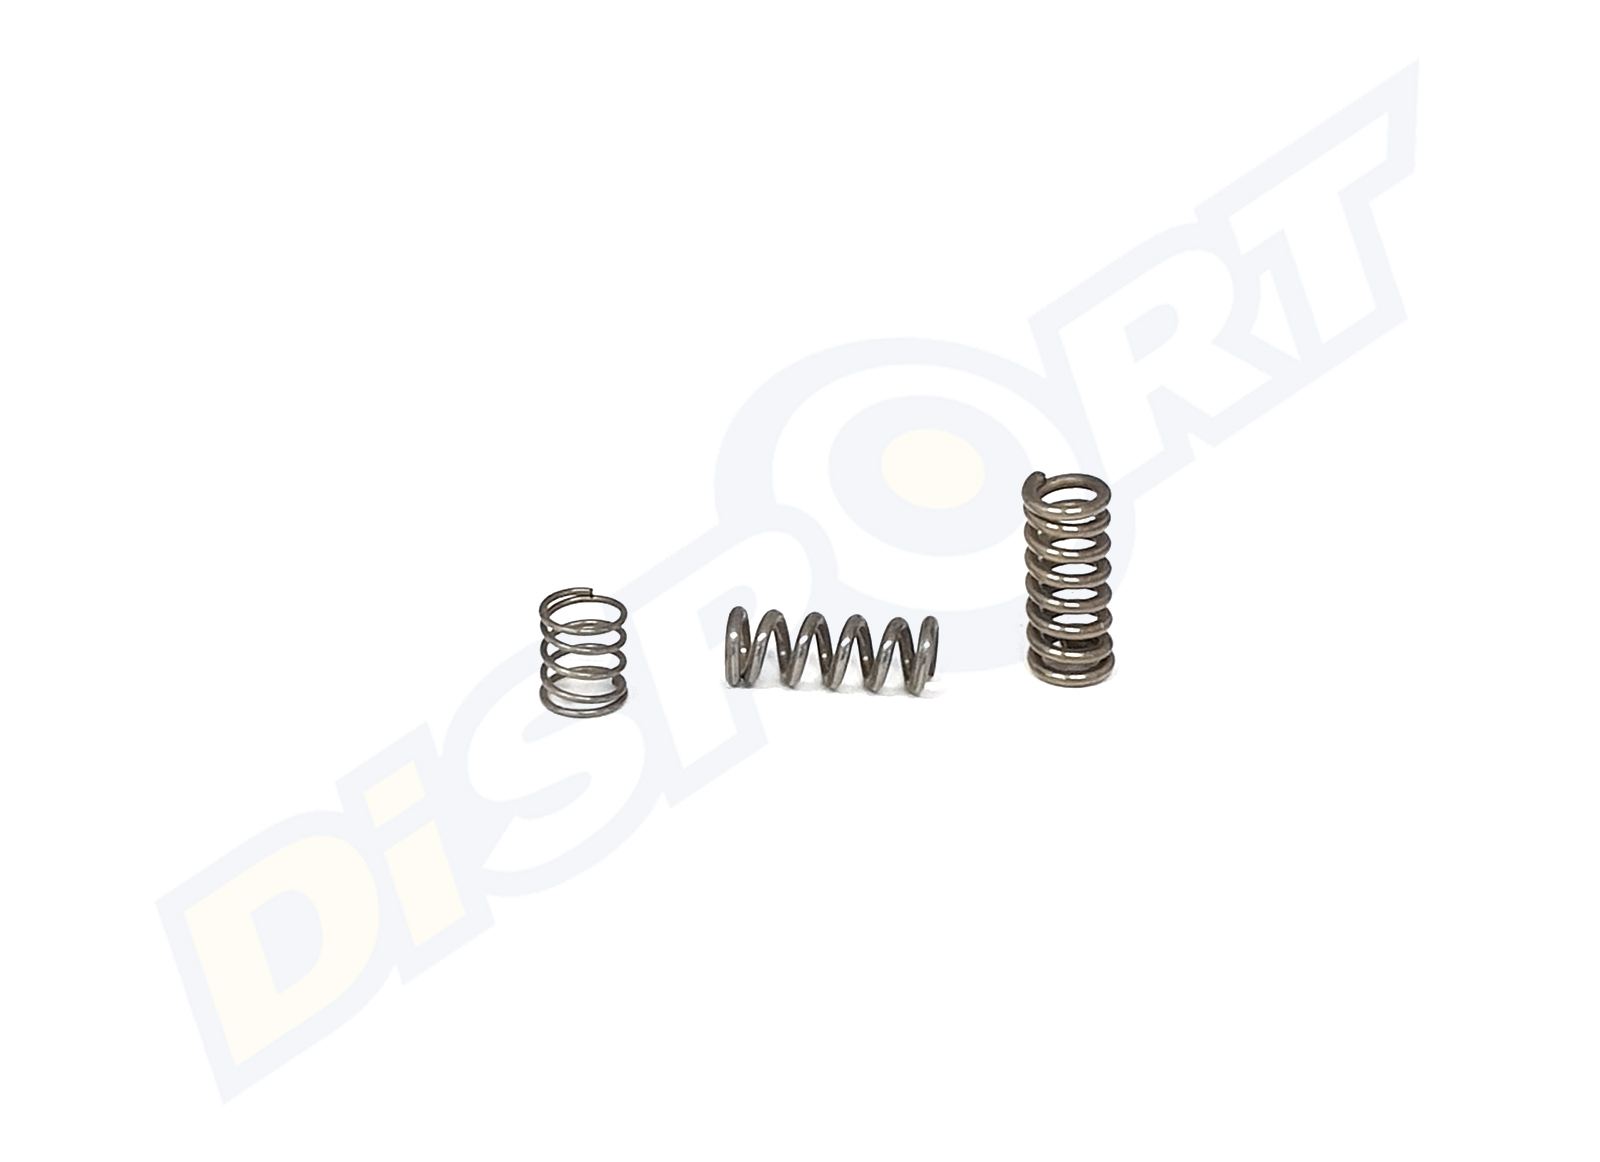 SCOTT MOLLE DI RICAMBIO REPLACEMENT SPRINGS SIGMA RELEASE SET 3 PZ